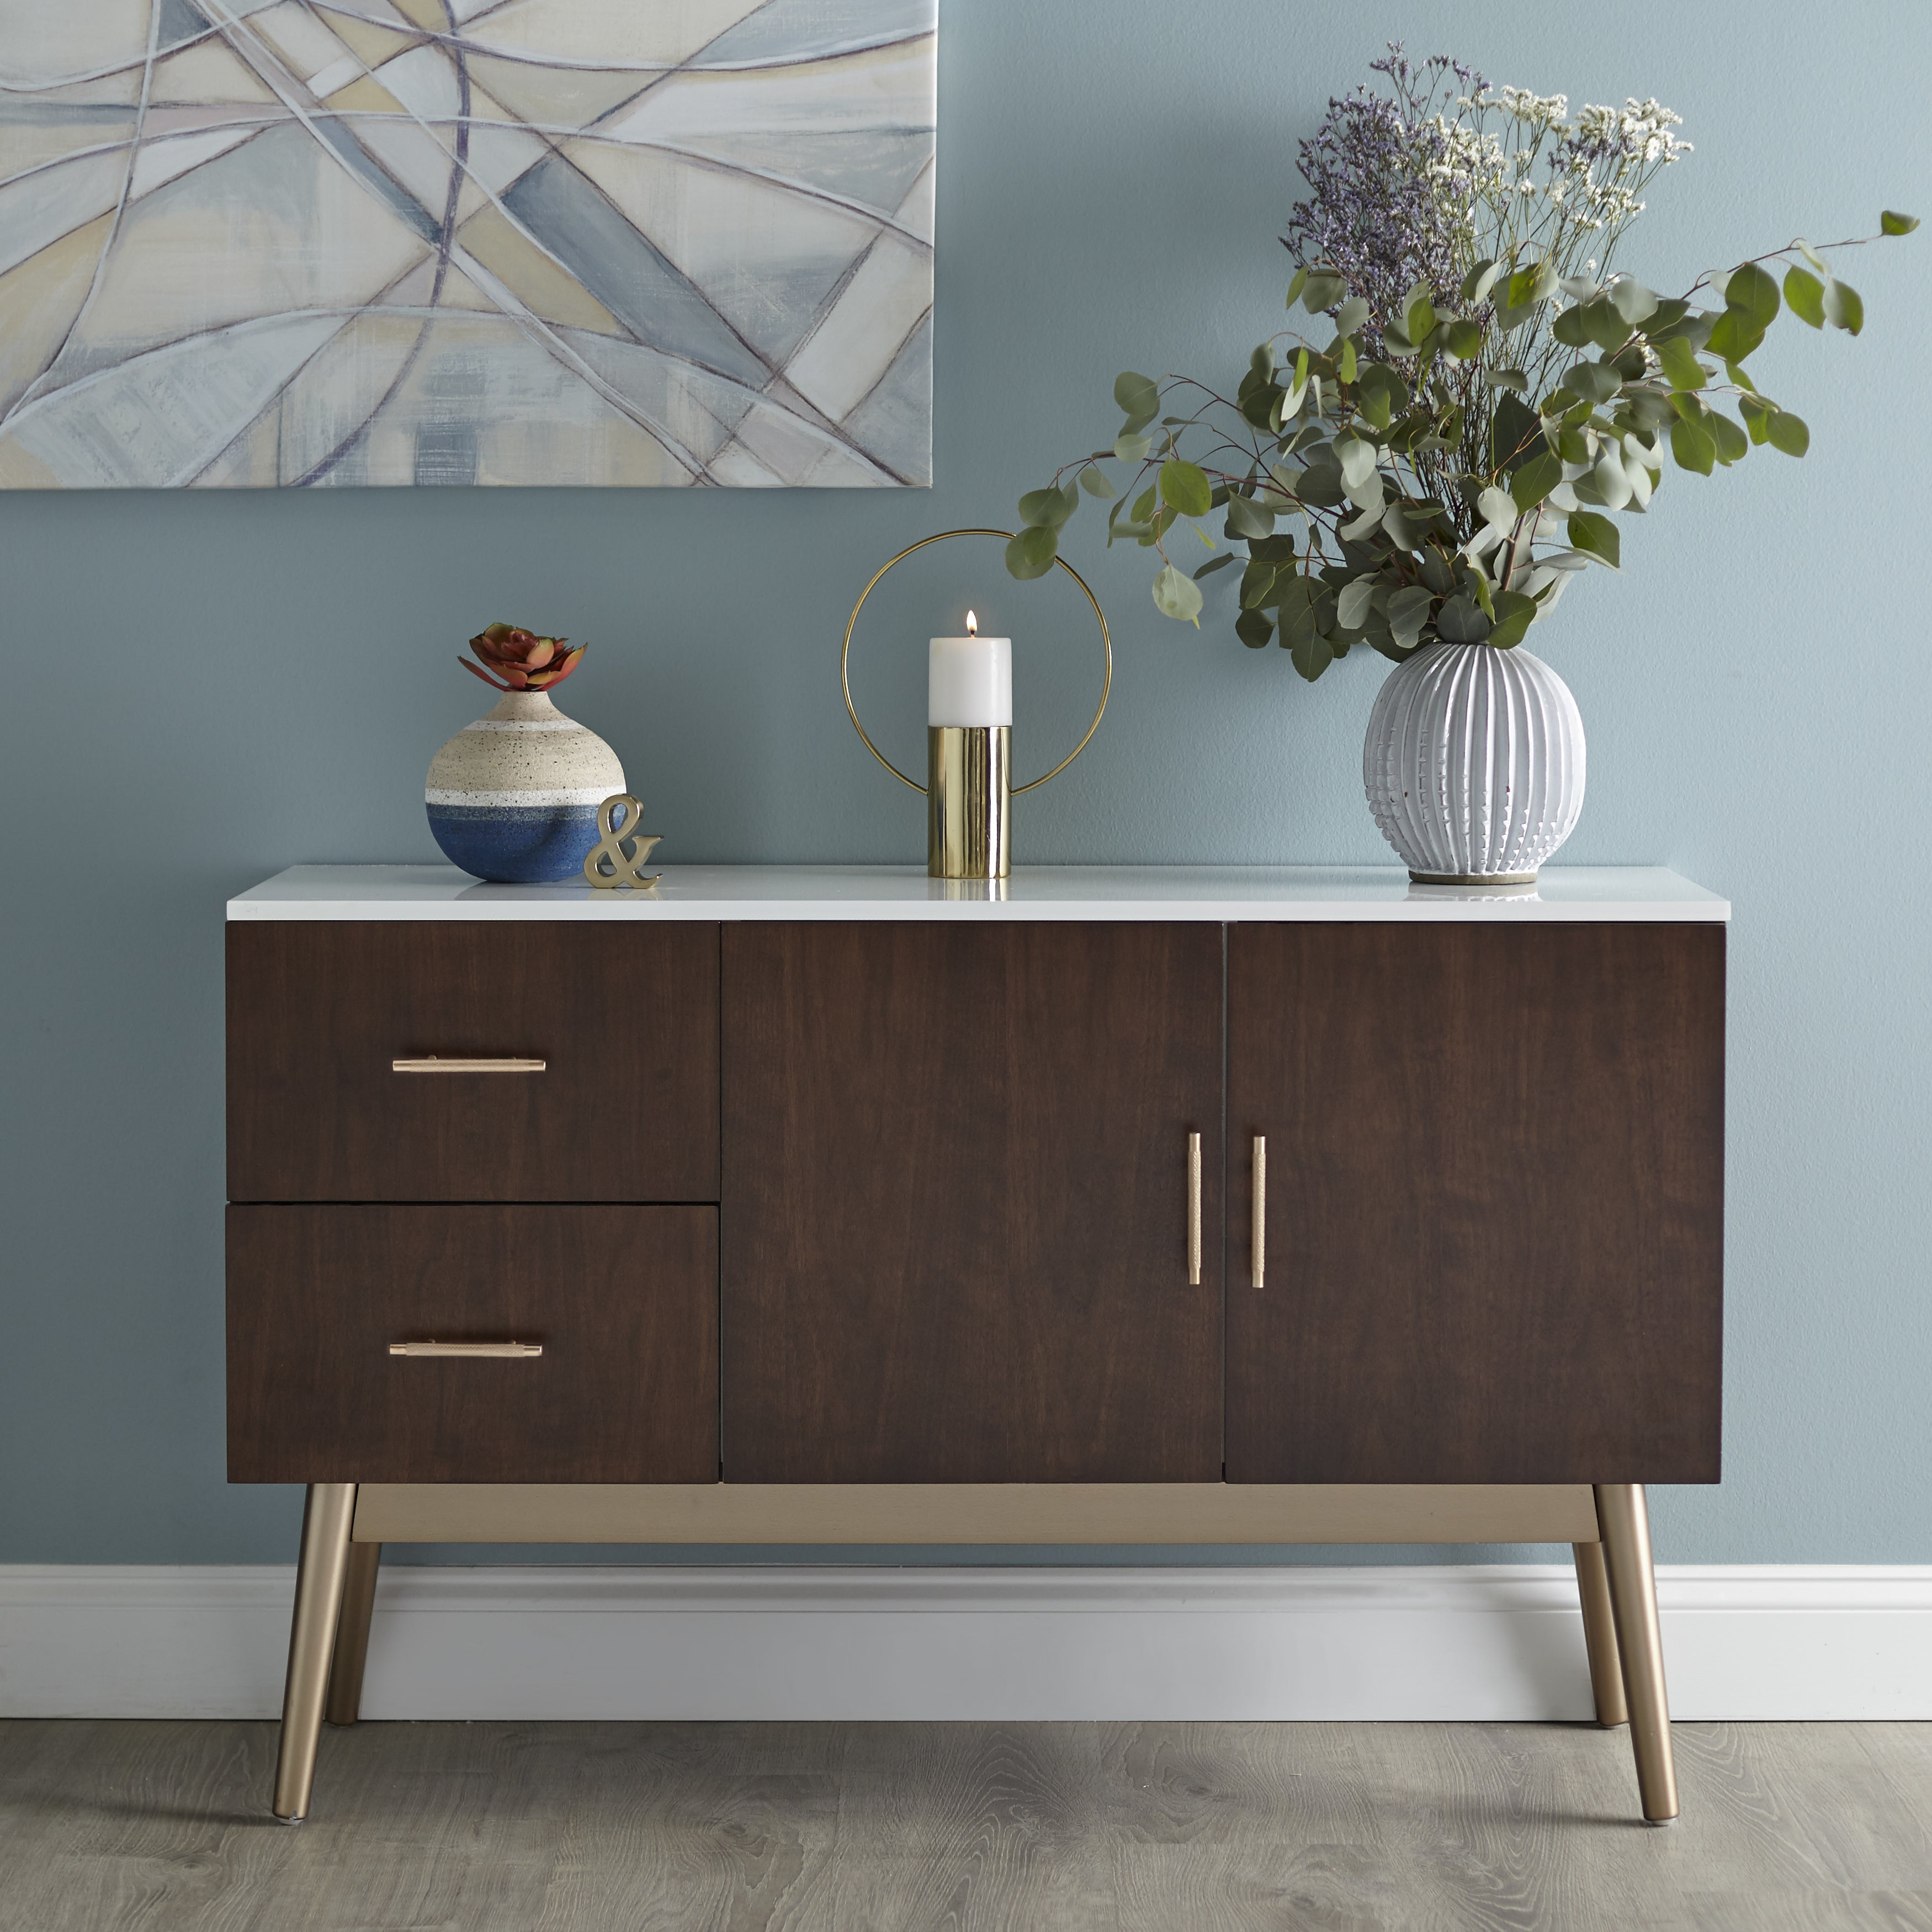 Buy Modern Contemporary Buffets Sideboards China Cabinets Rh Overstock Com  Thaddeus Contemporary Buffet Table Philippine Contemporary